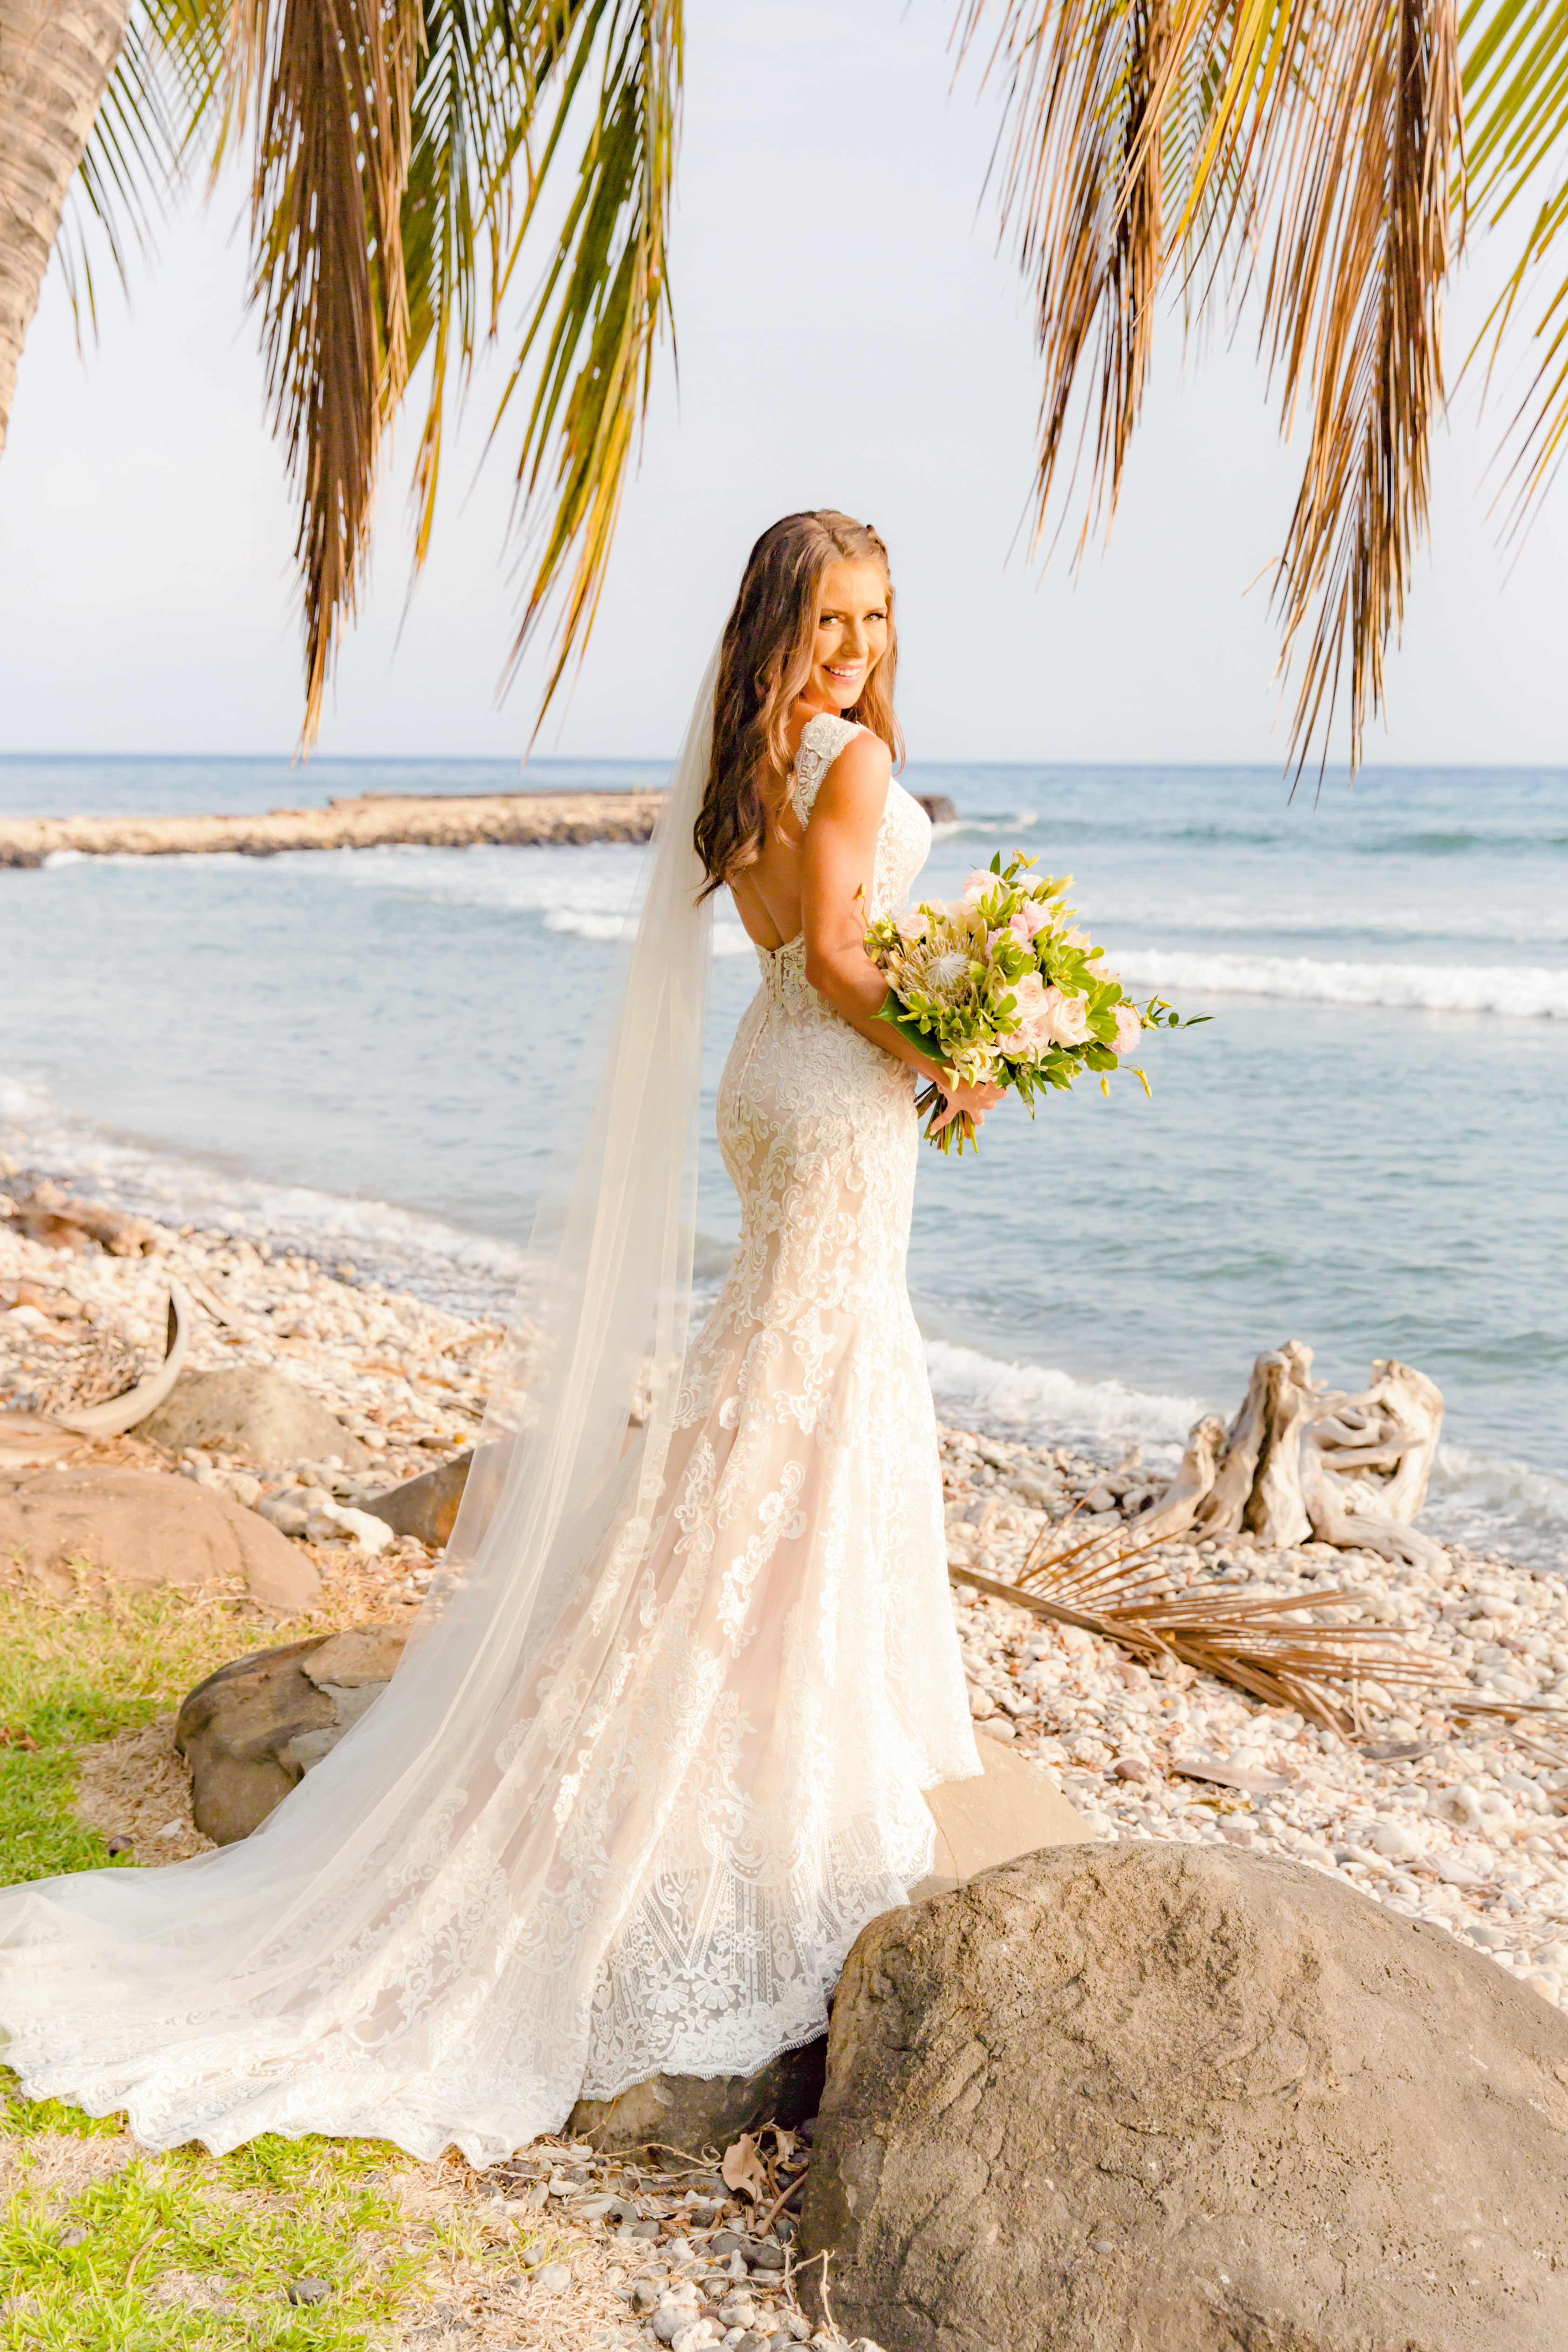 Maui Bridal Portrait | Destination Wedding in Maui | Maui Wedding Planner | Maui's Angels blog